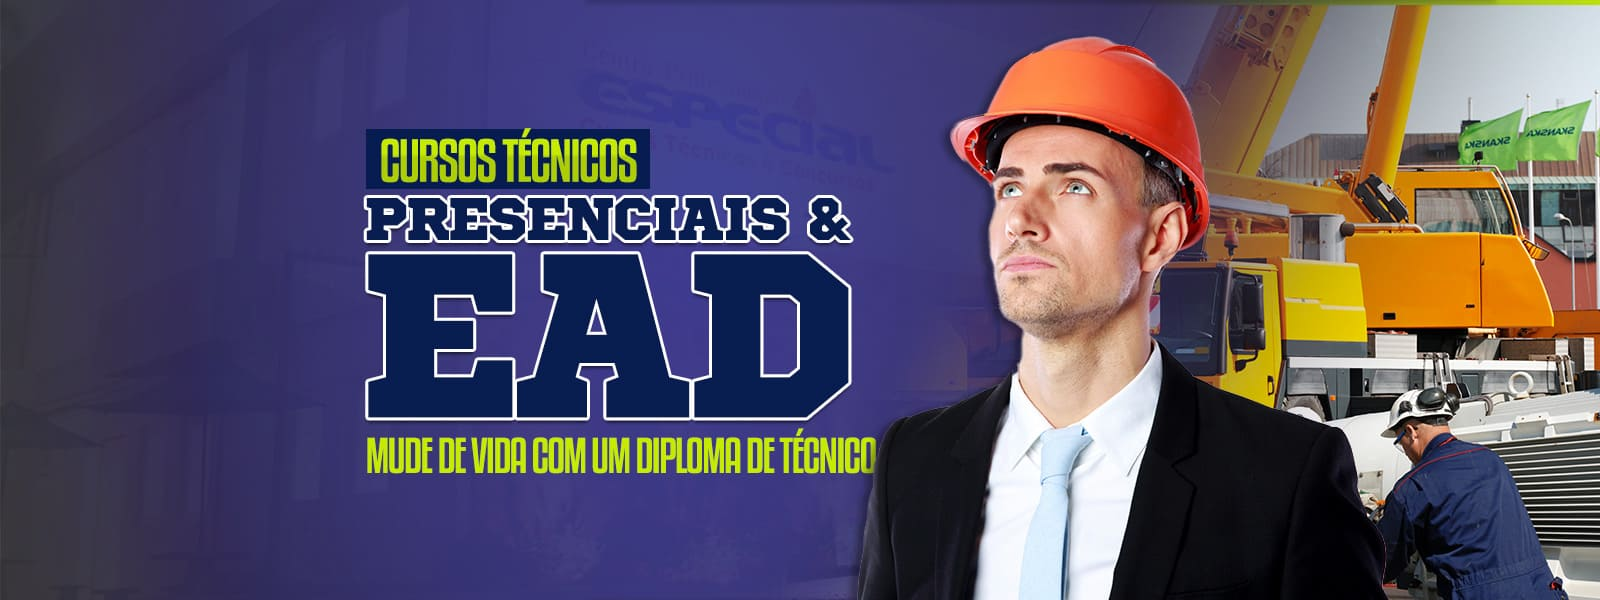 banners-site-2020-tecnicos